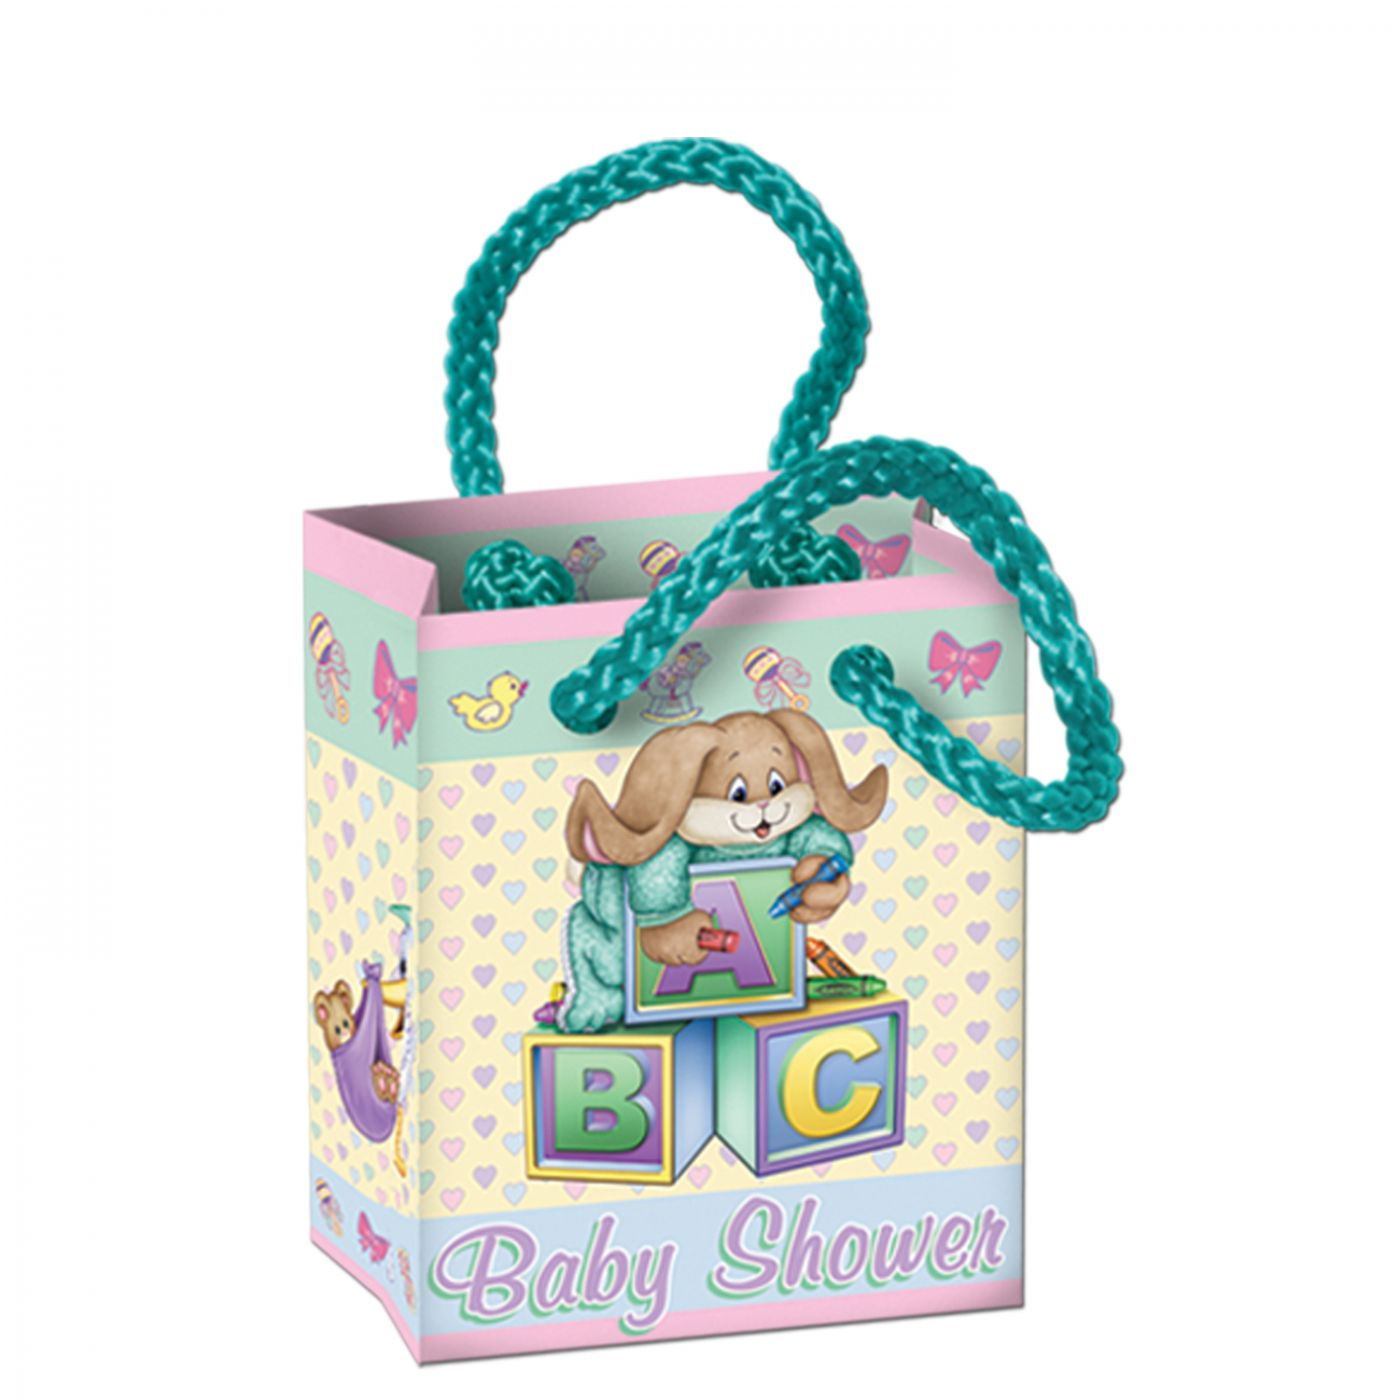 Cuddle-Time Mini Gift Bag Party Favors image